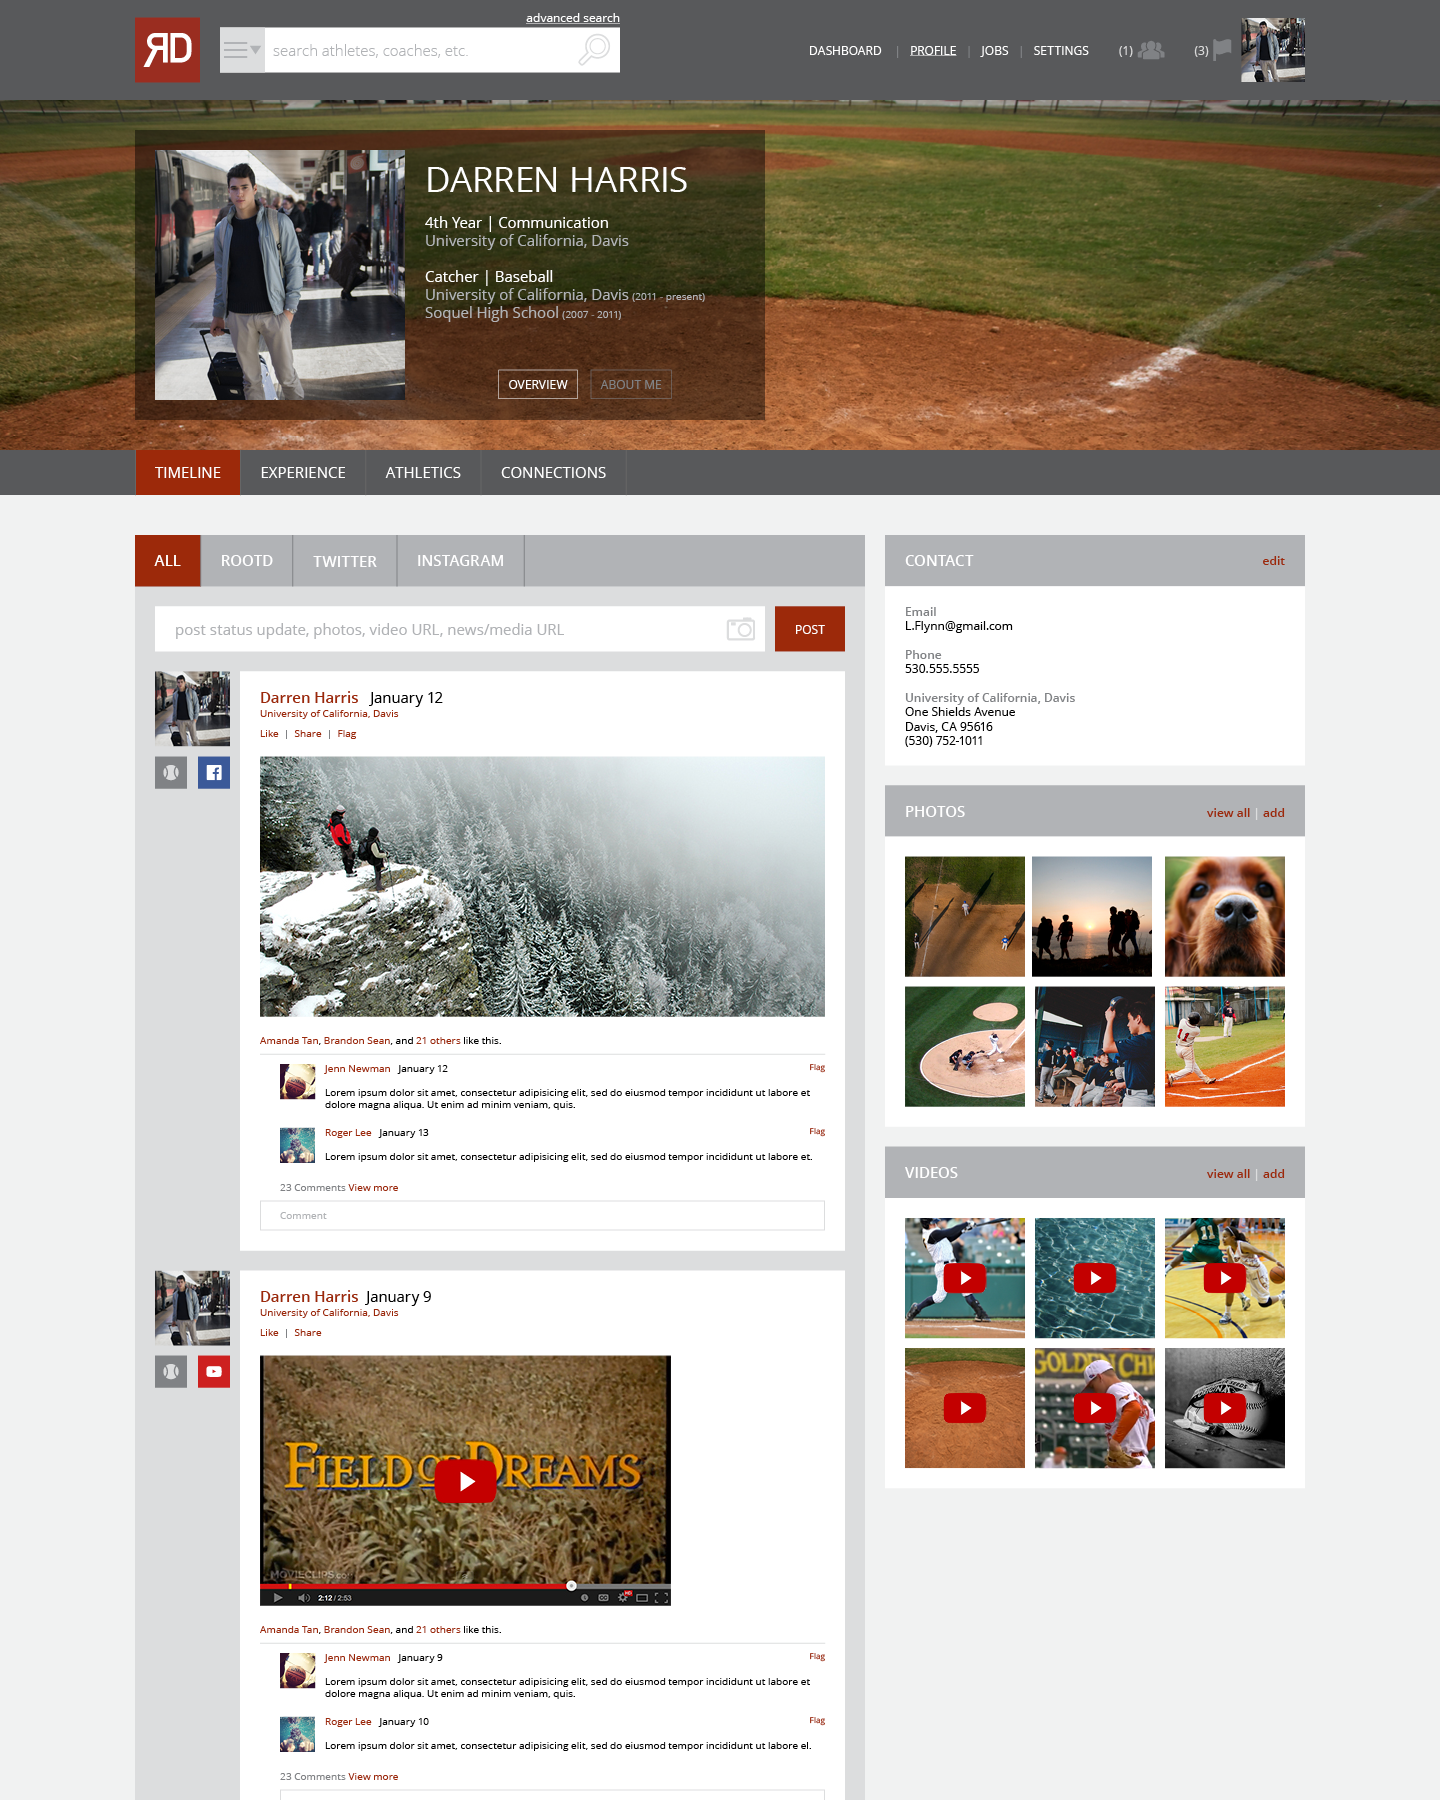 MyProfile_CollegeAthlete-Timeline-AboutMe-Field_121014